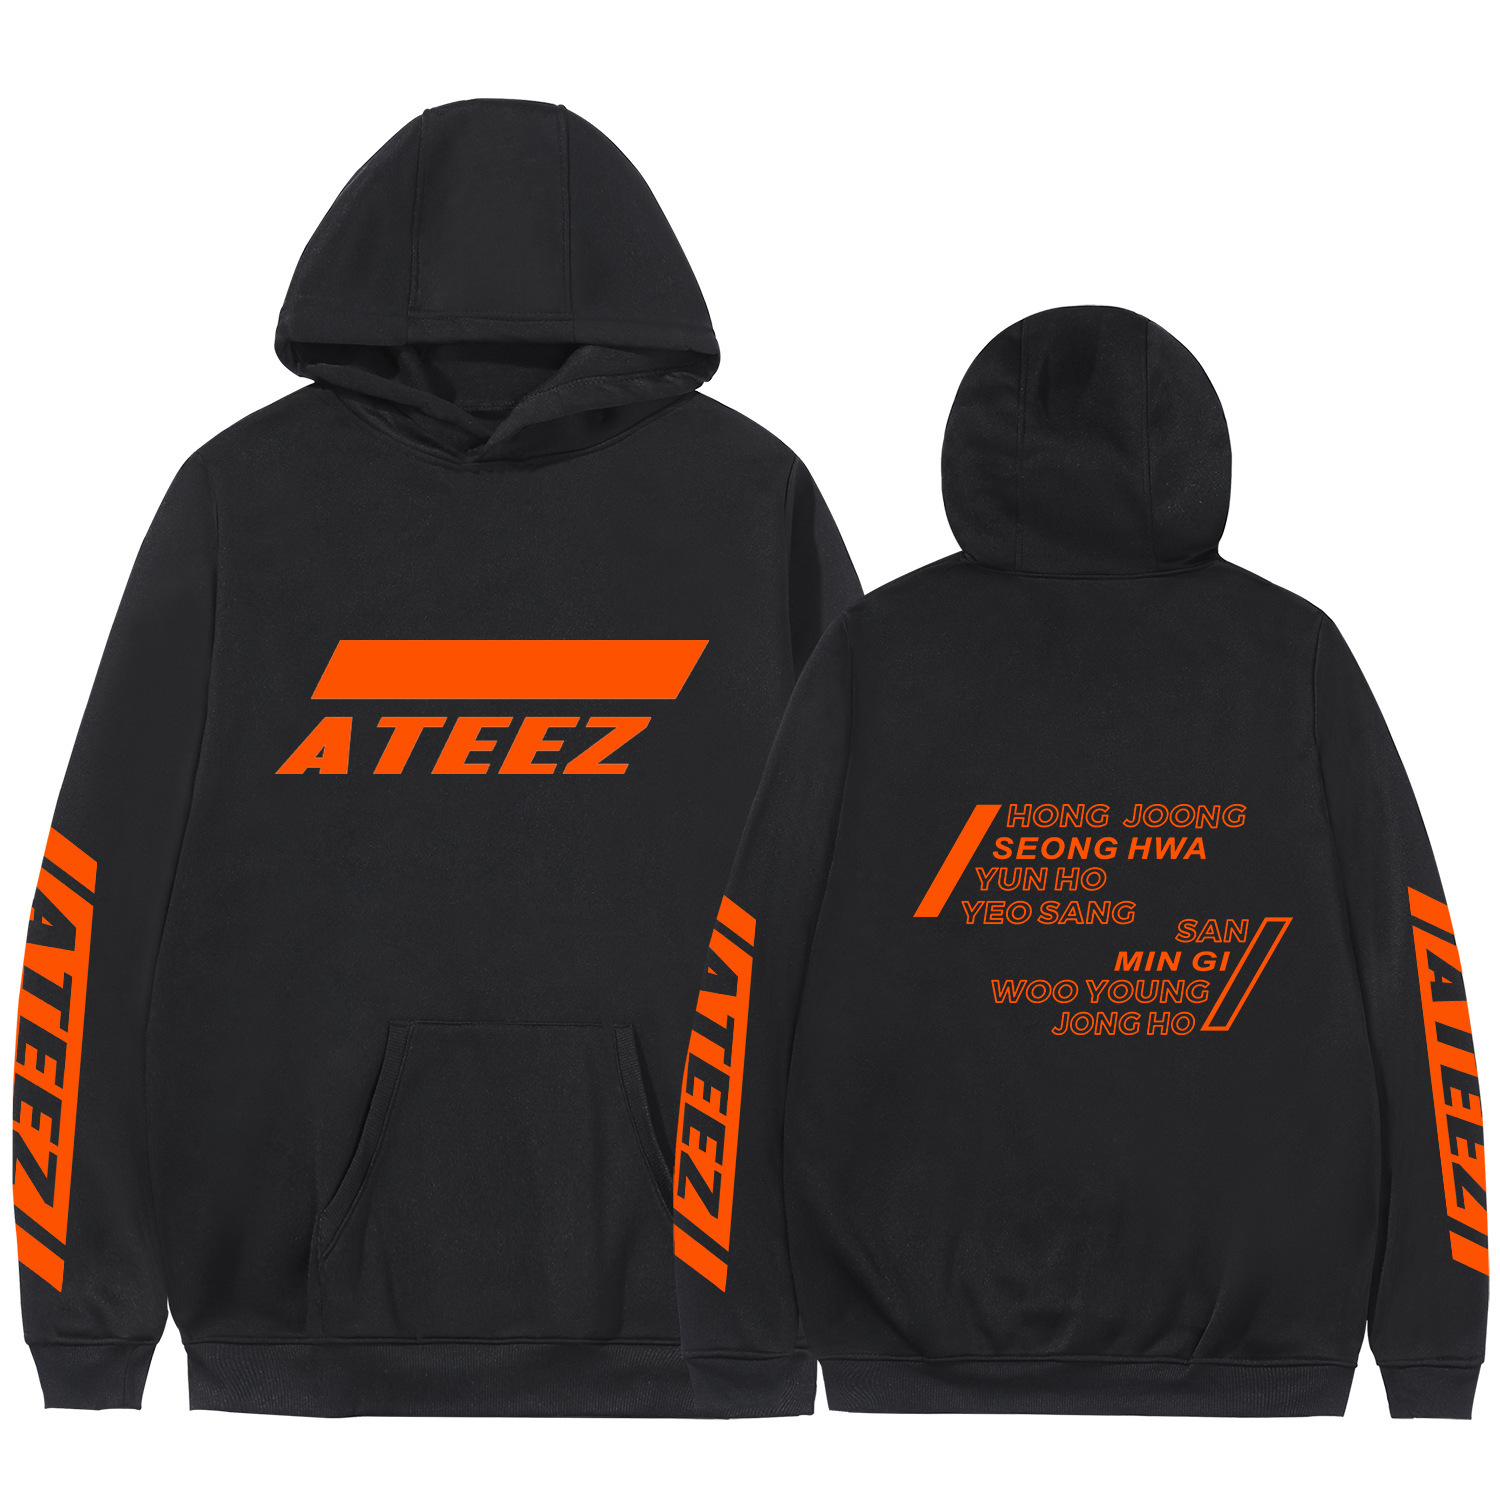 2019 Ateez Kpop New Album Sweatshirt With Pocket Crewneck Fleece Warm Kawaii Haajuku Long Sleeve Winter Hoodies